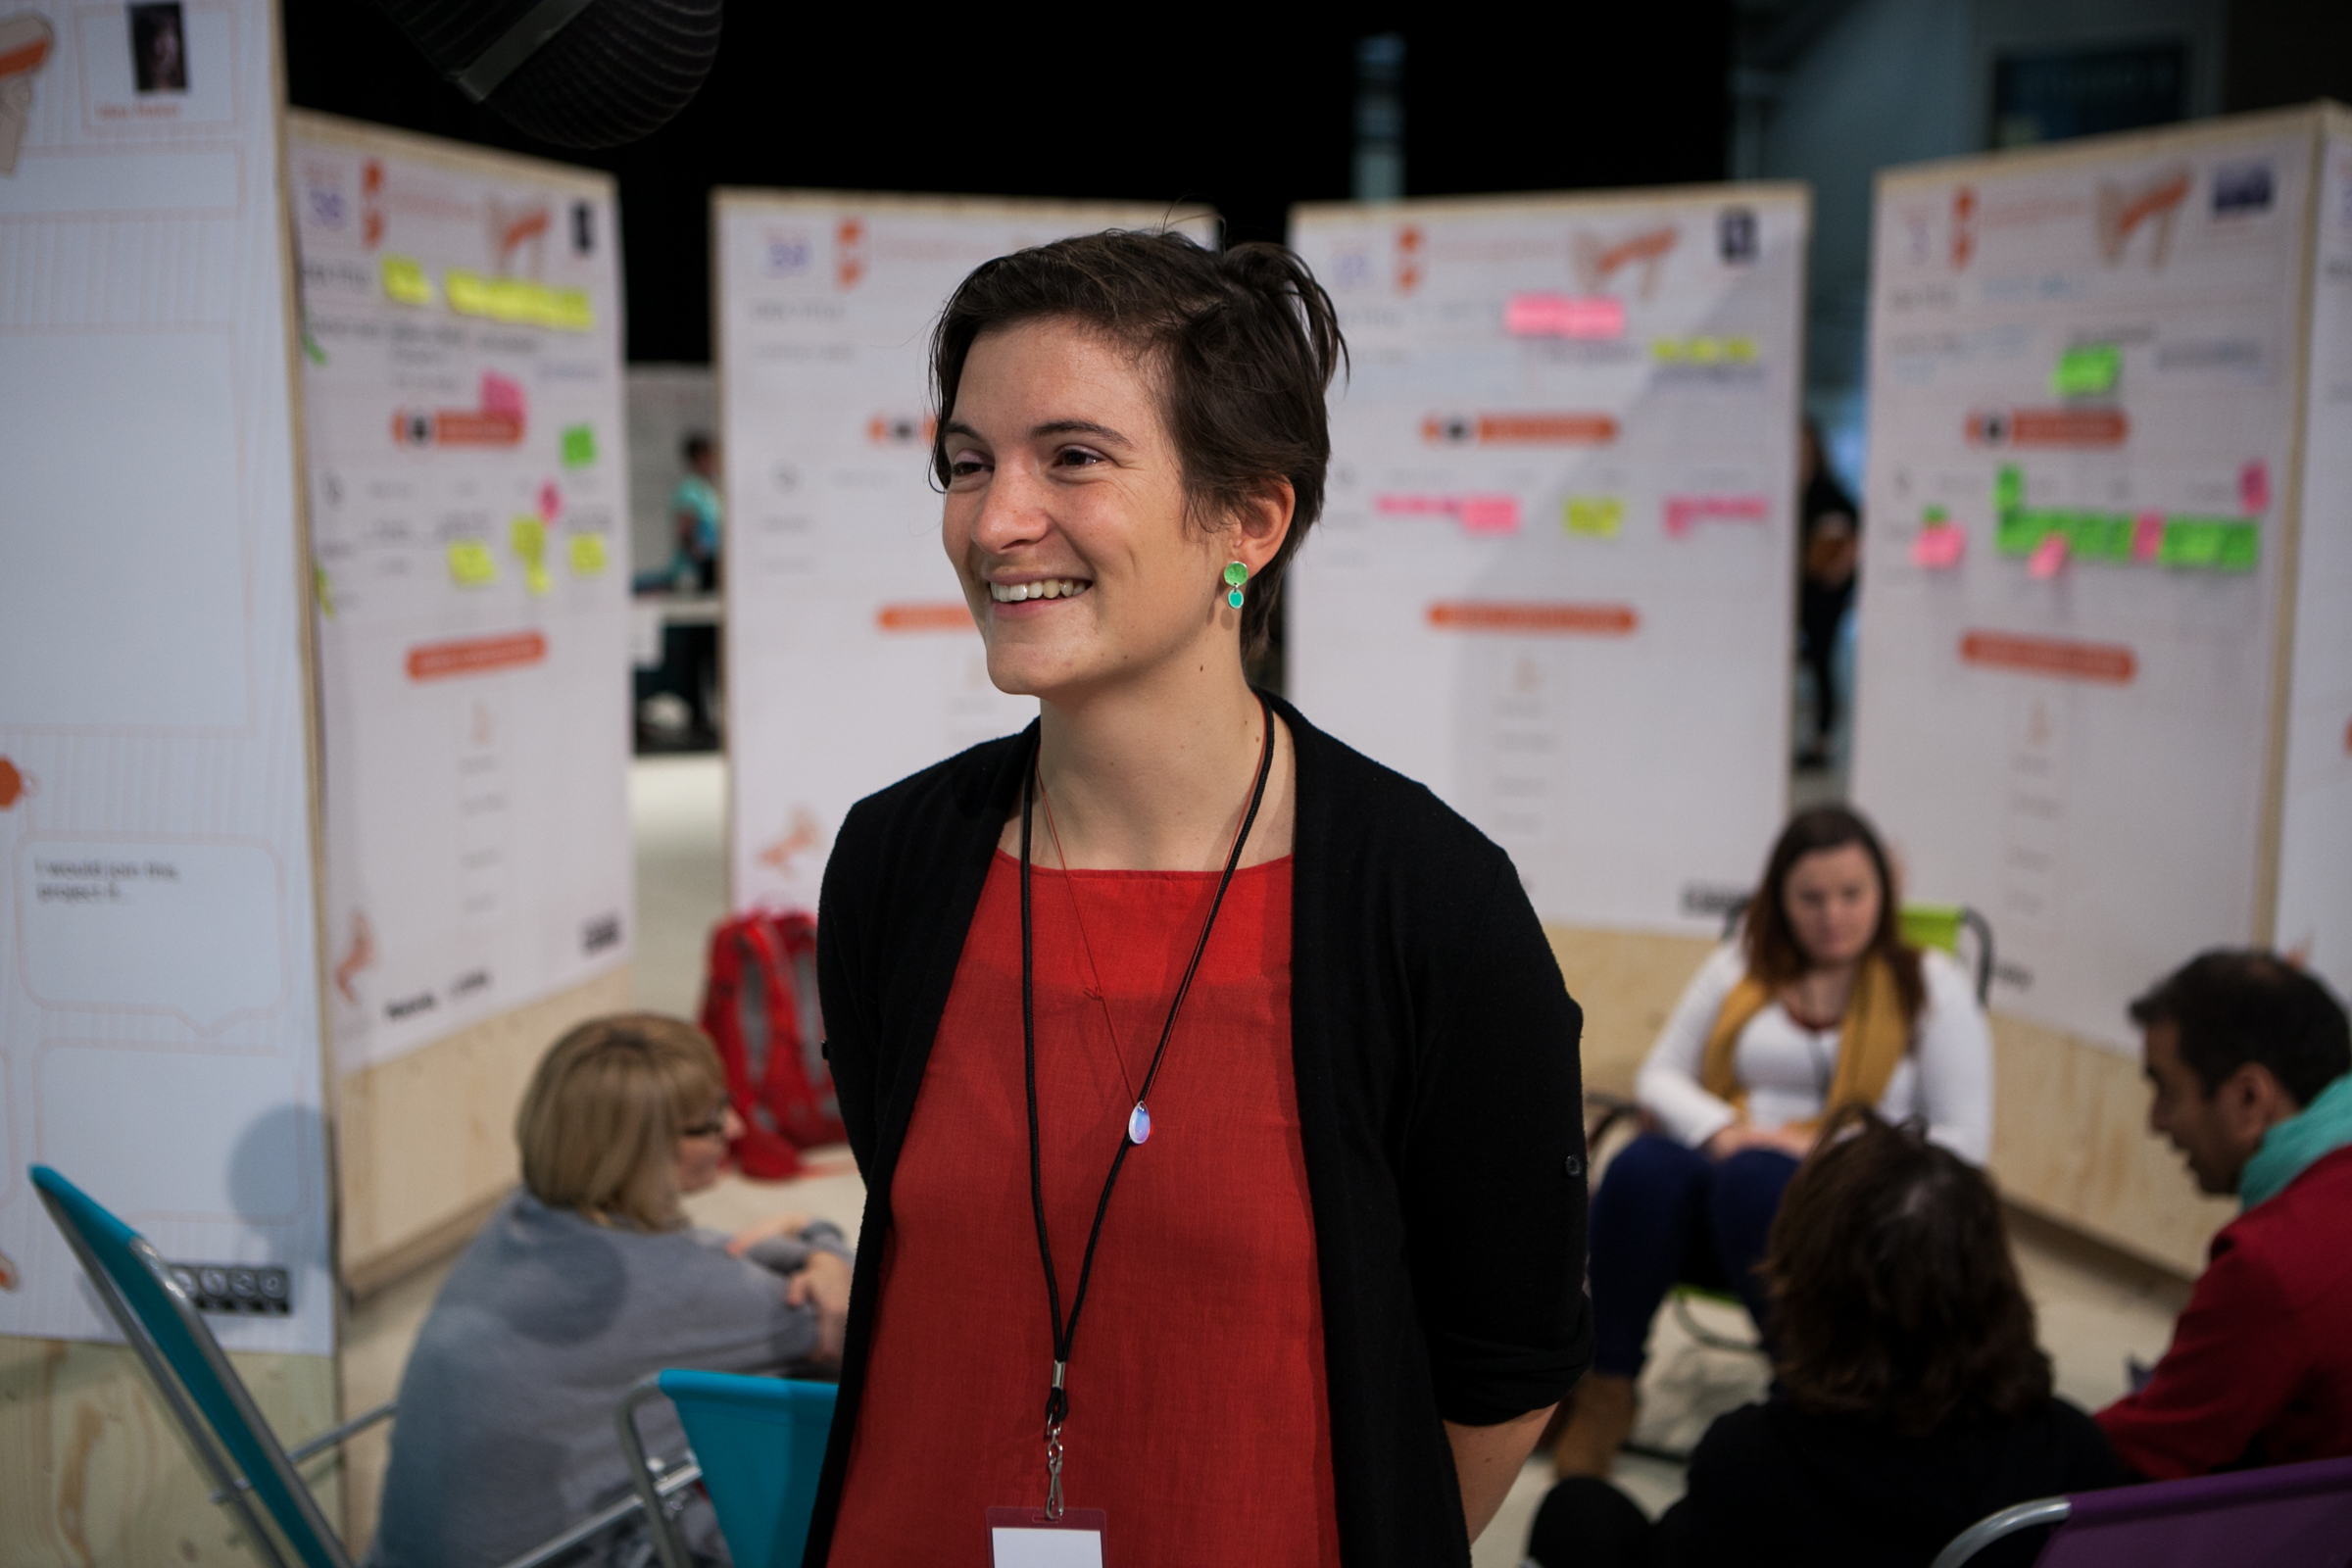 Laura Popplow at the Idea Camp in Sweden, 2015. Photo by Julio Albarrán.